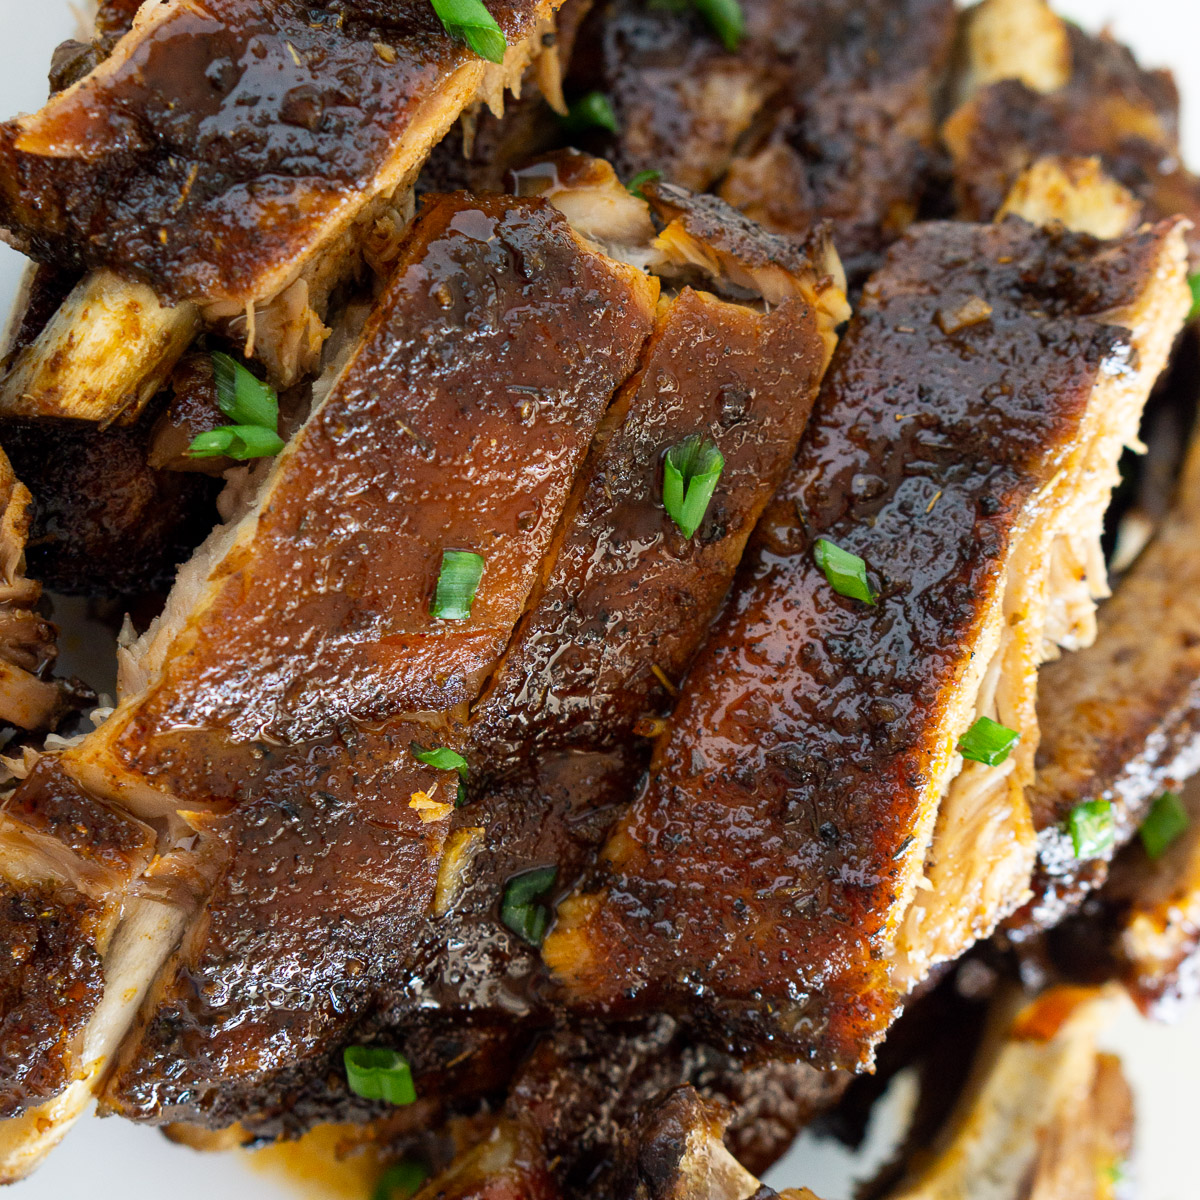 oven baked maple glazed ribs on a plate